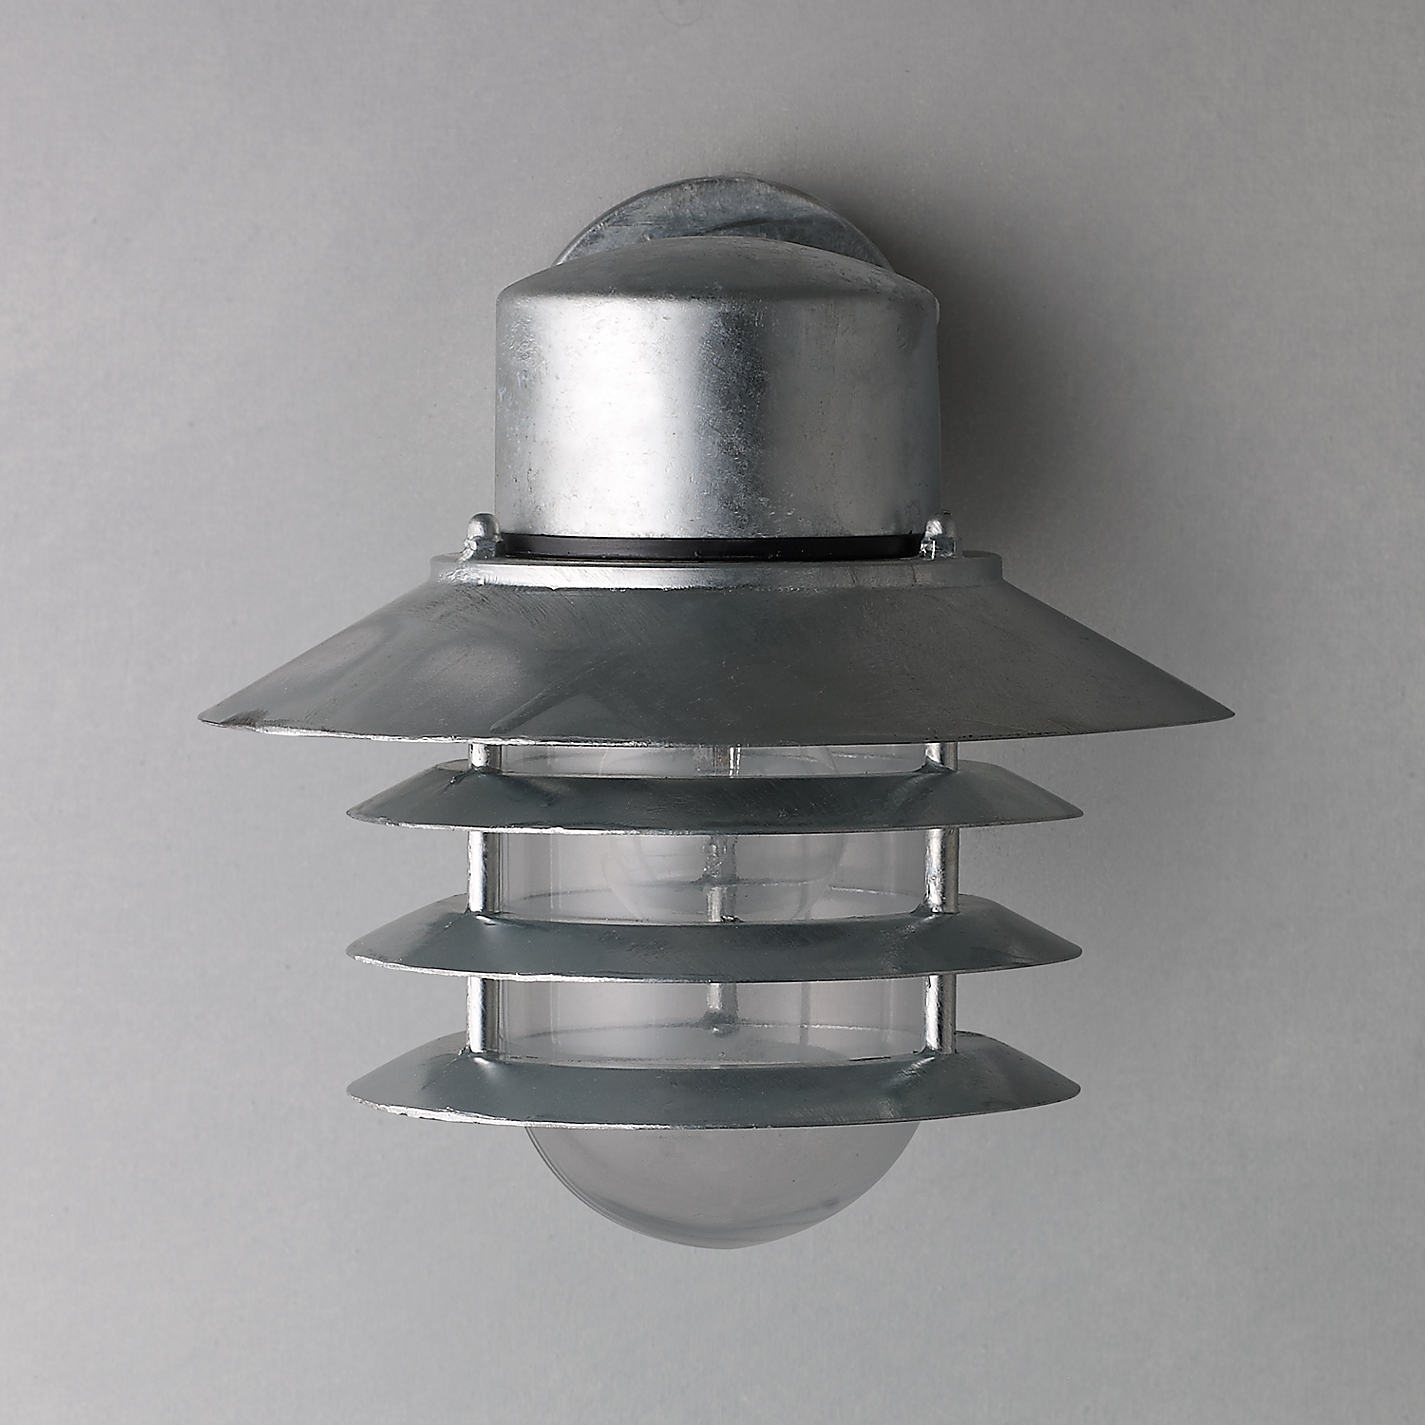 outdoor wall light john lewis photo - 8